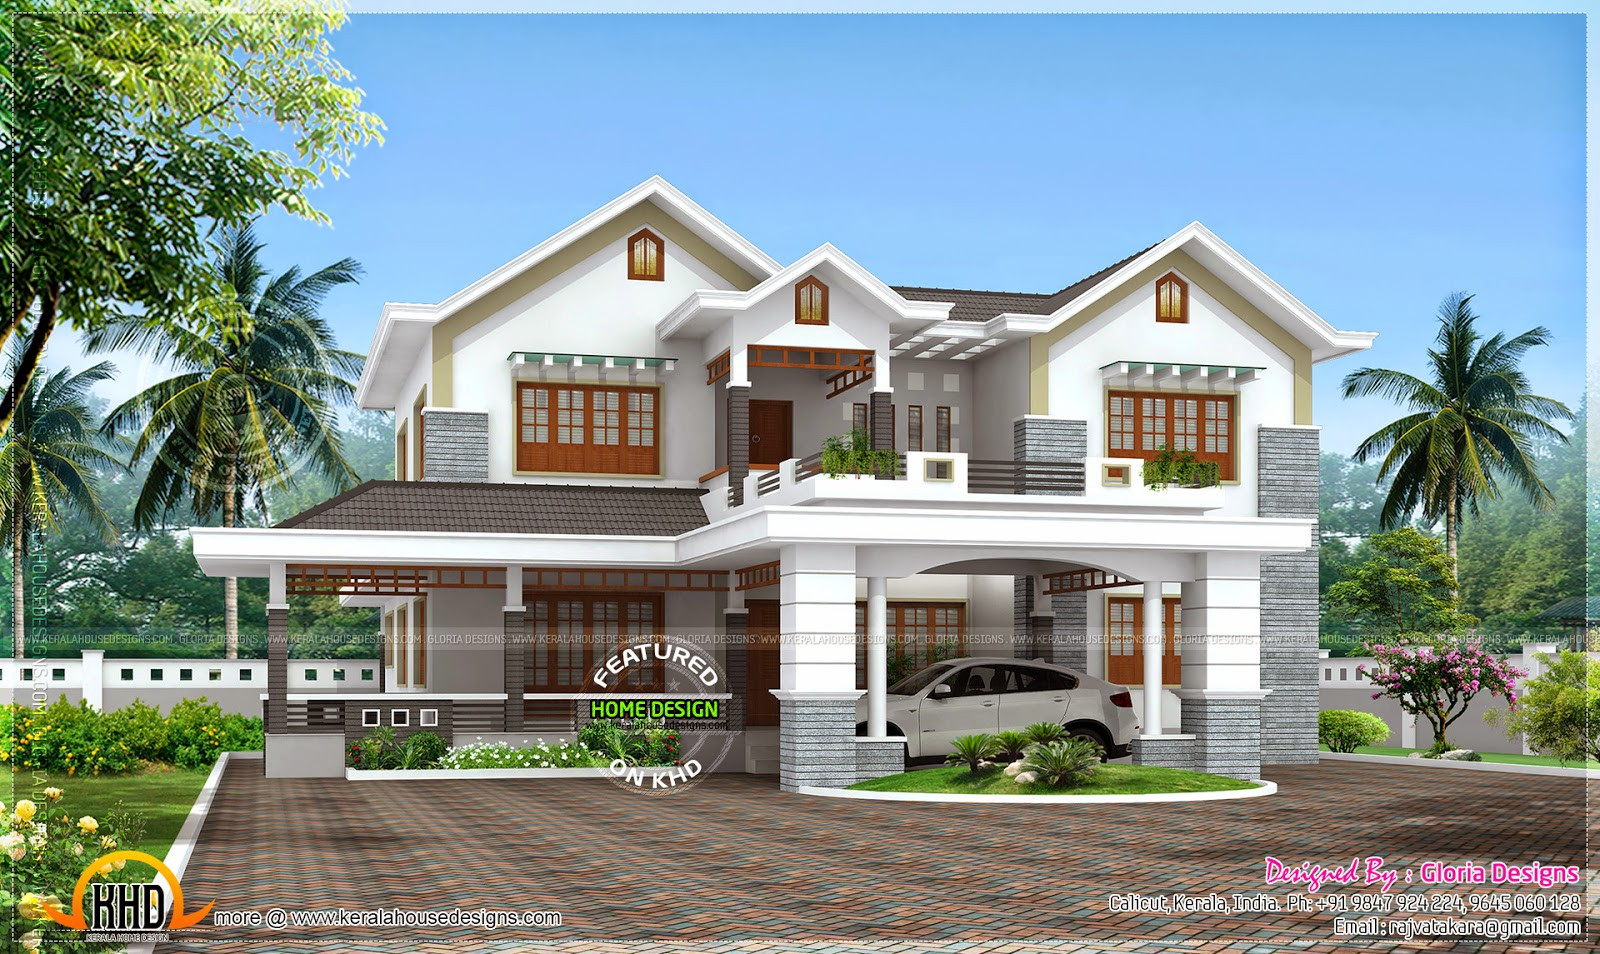 Beautiful 4 bedroom modern house kerala home design and for Top 10 beautiful houses